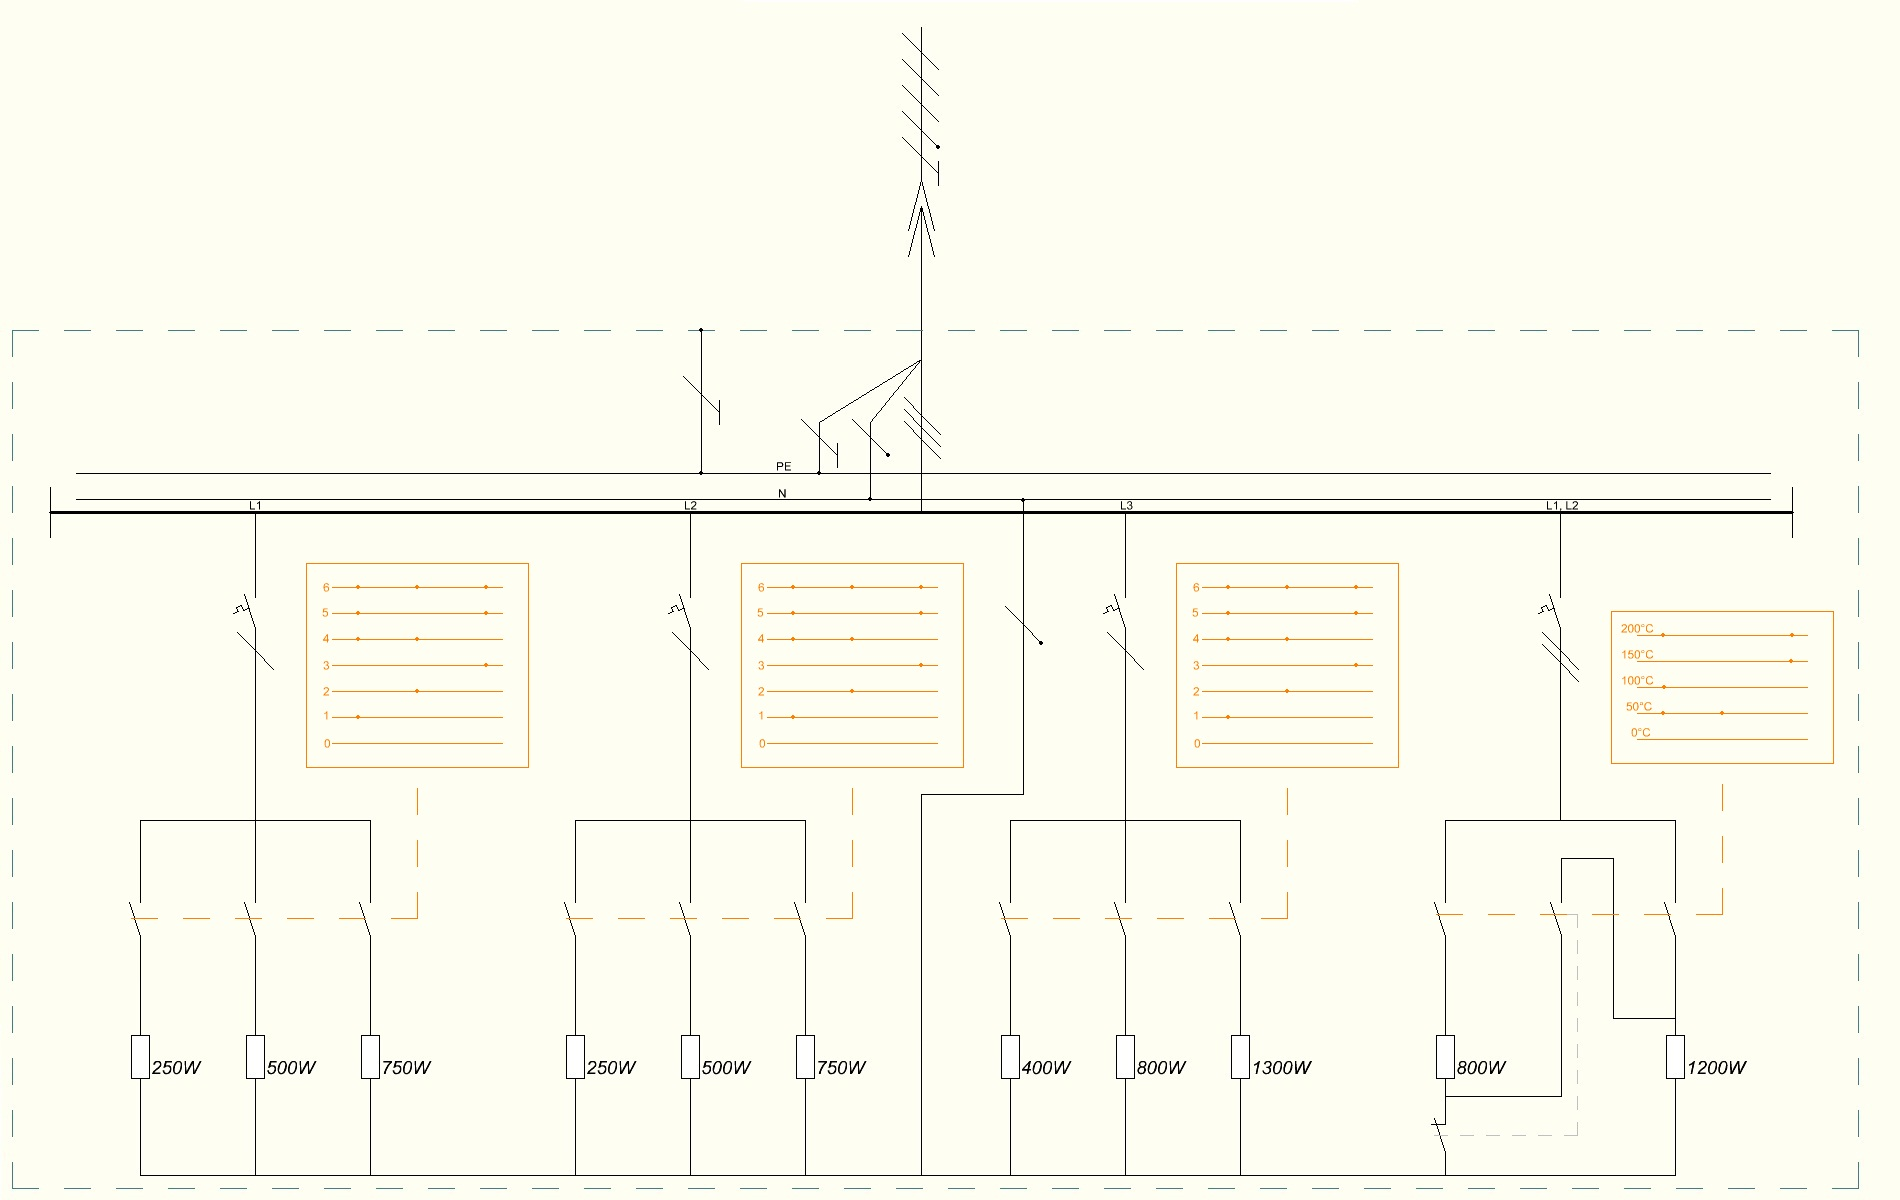 hight resolution of file schematic wiring diagram of electrical stove jpg wikimedia stove plug wiring electrical stove wiring diagram